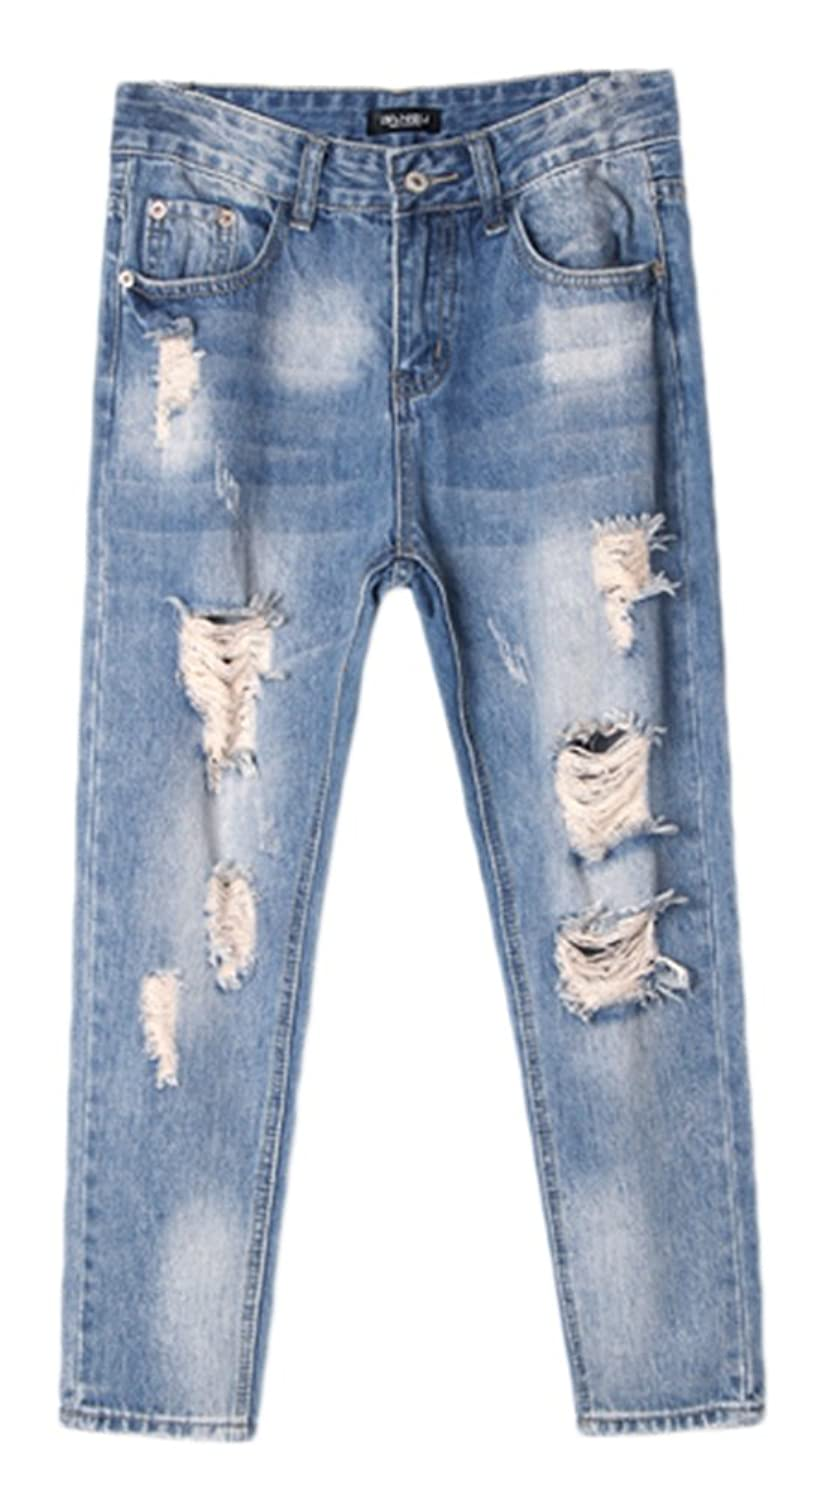 AvaCostume Baggy Ripped Boyfriend Style Denim Jeans